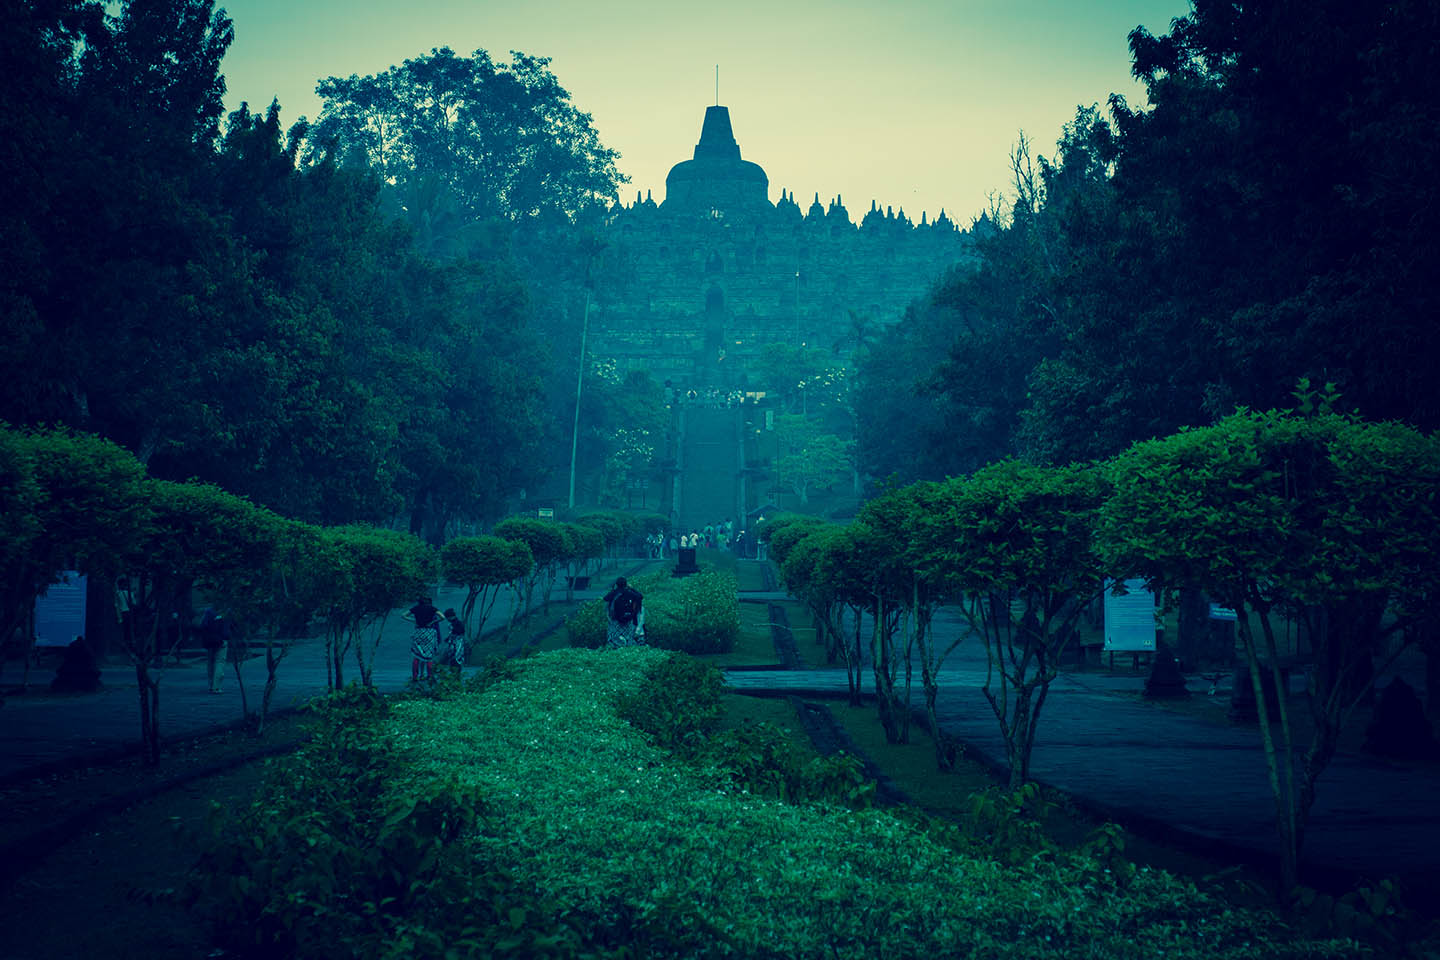 Tempel Borobudur Java Indonesia Entrance Fee / Eintrittsgebühr Gebühr Tempelanlage Indonesien